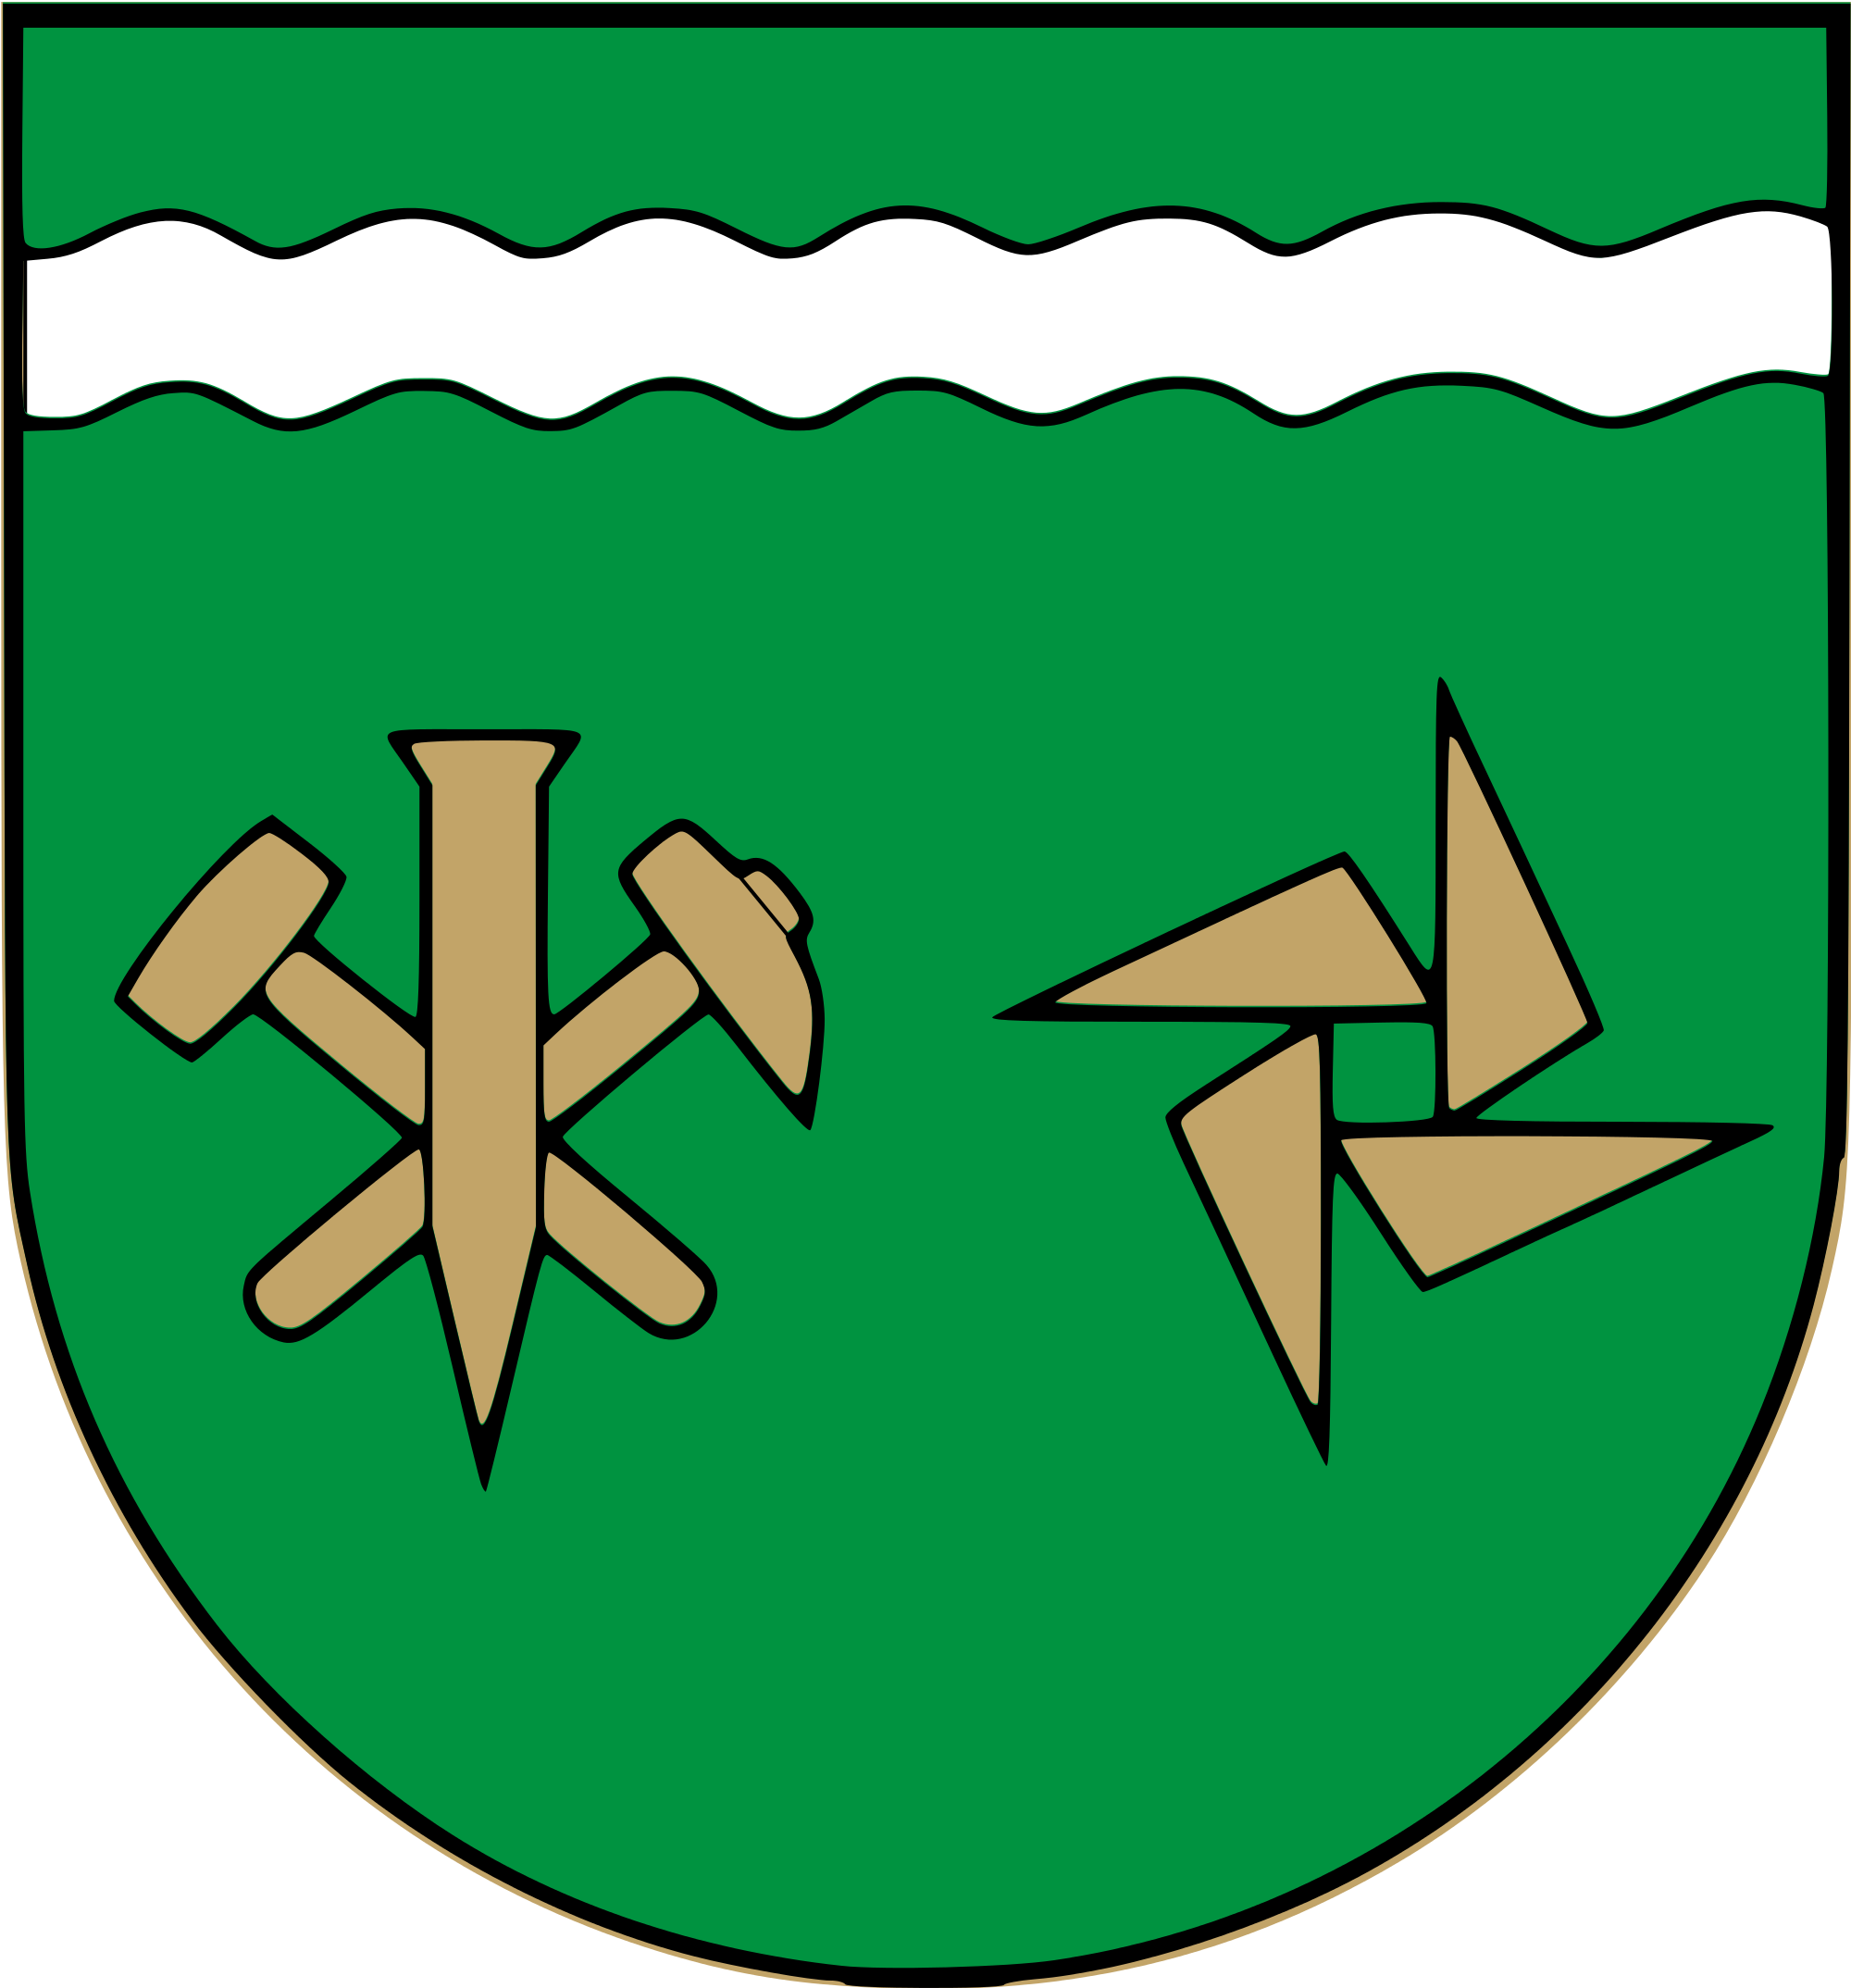 File:Wappen Brotterode.